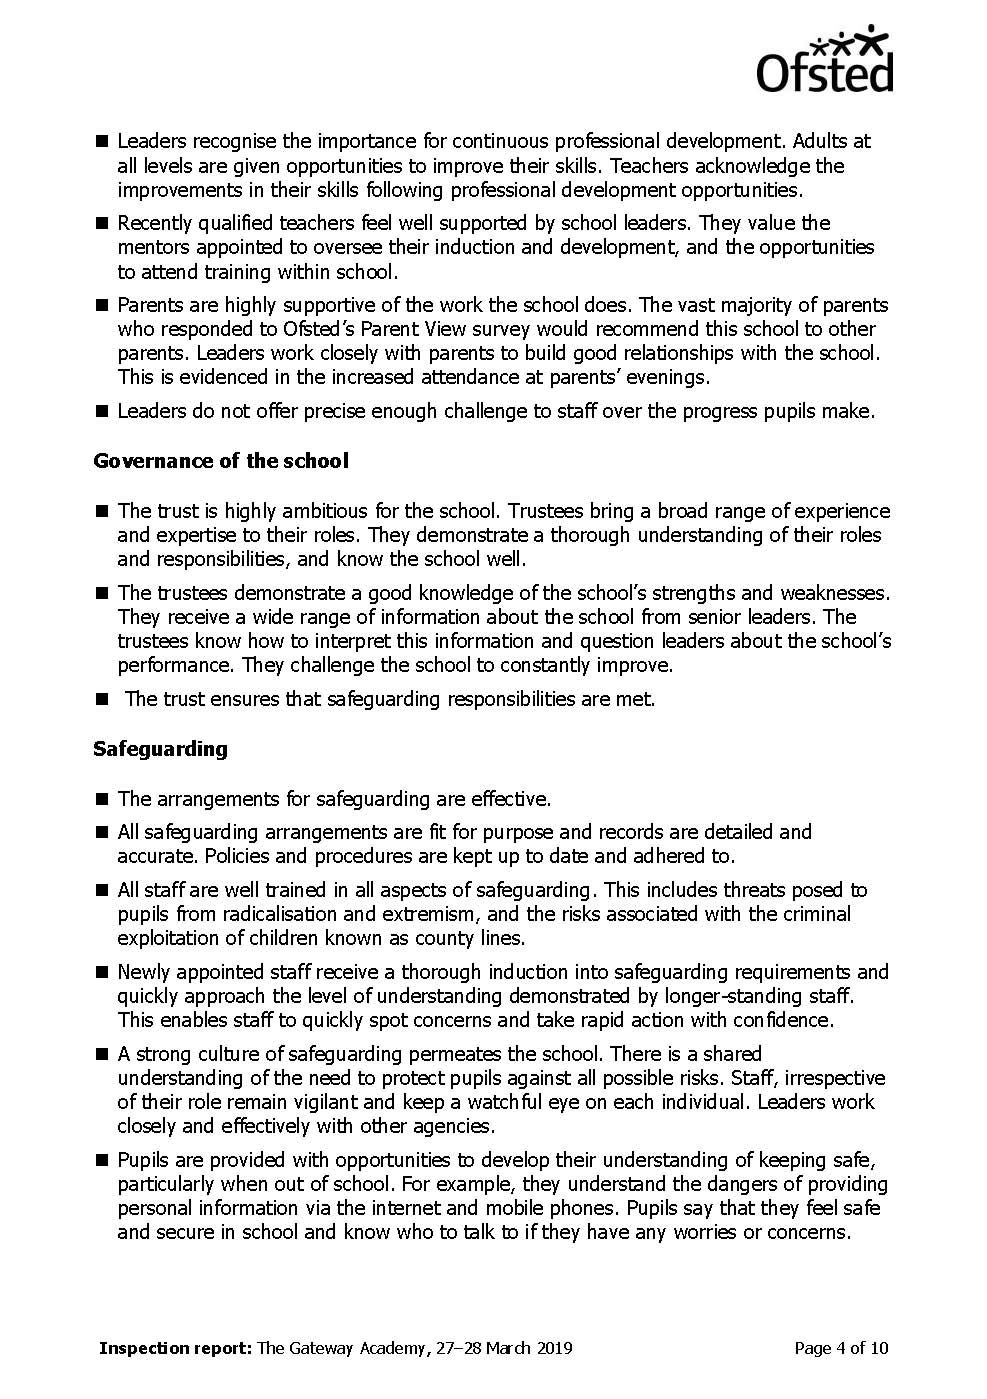 The Gateway Aacdemy Ofsted Report April 2019_Page_04